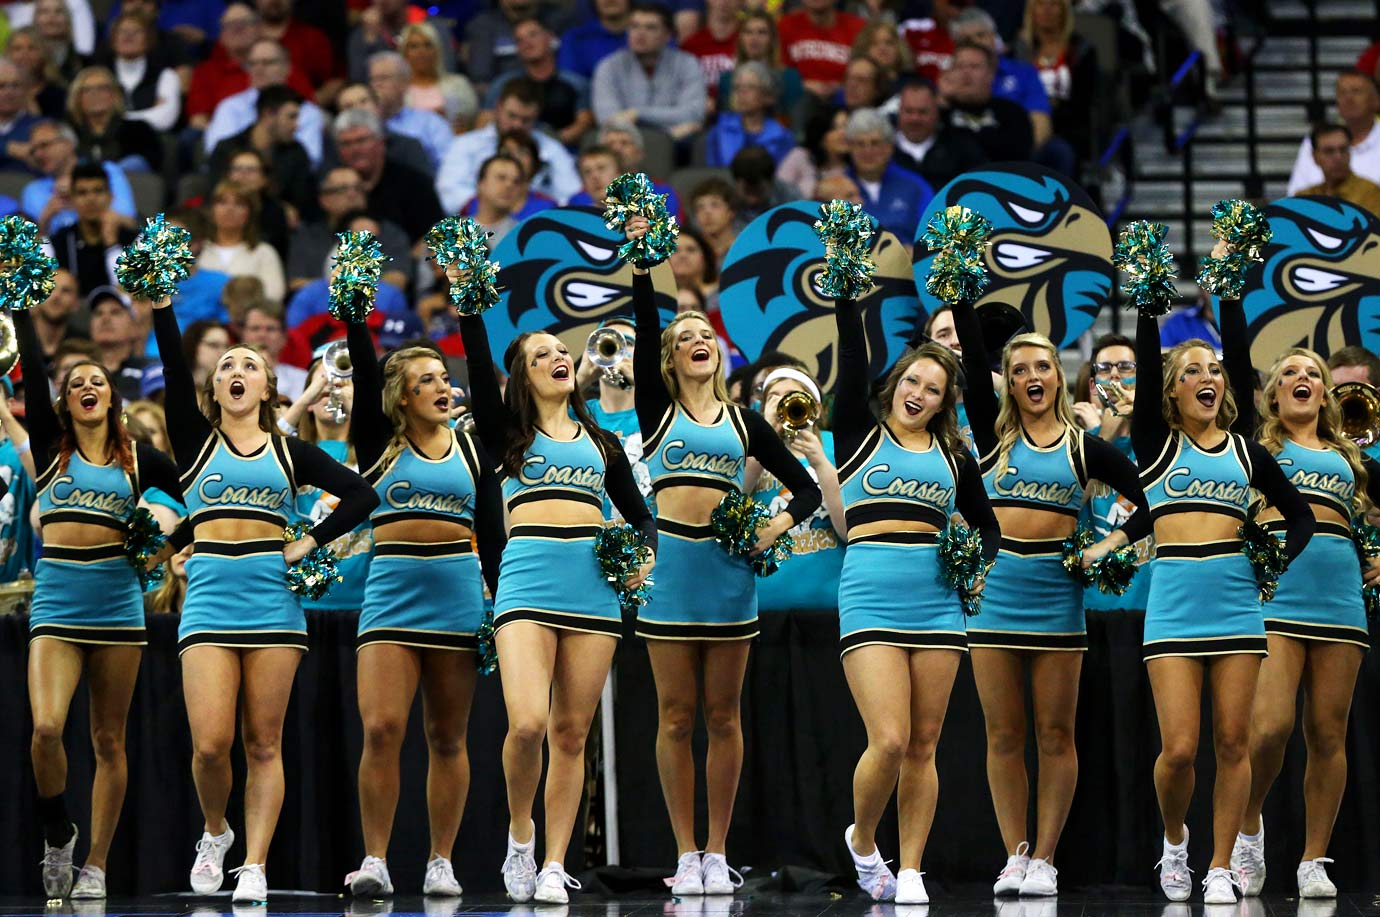 Coastal Carolina University cheerleaders suspended amid prostitution allegation